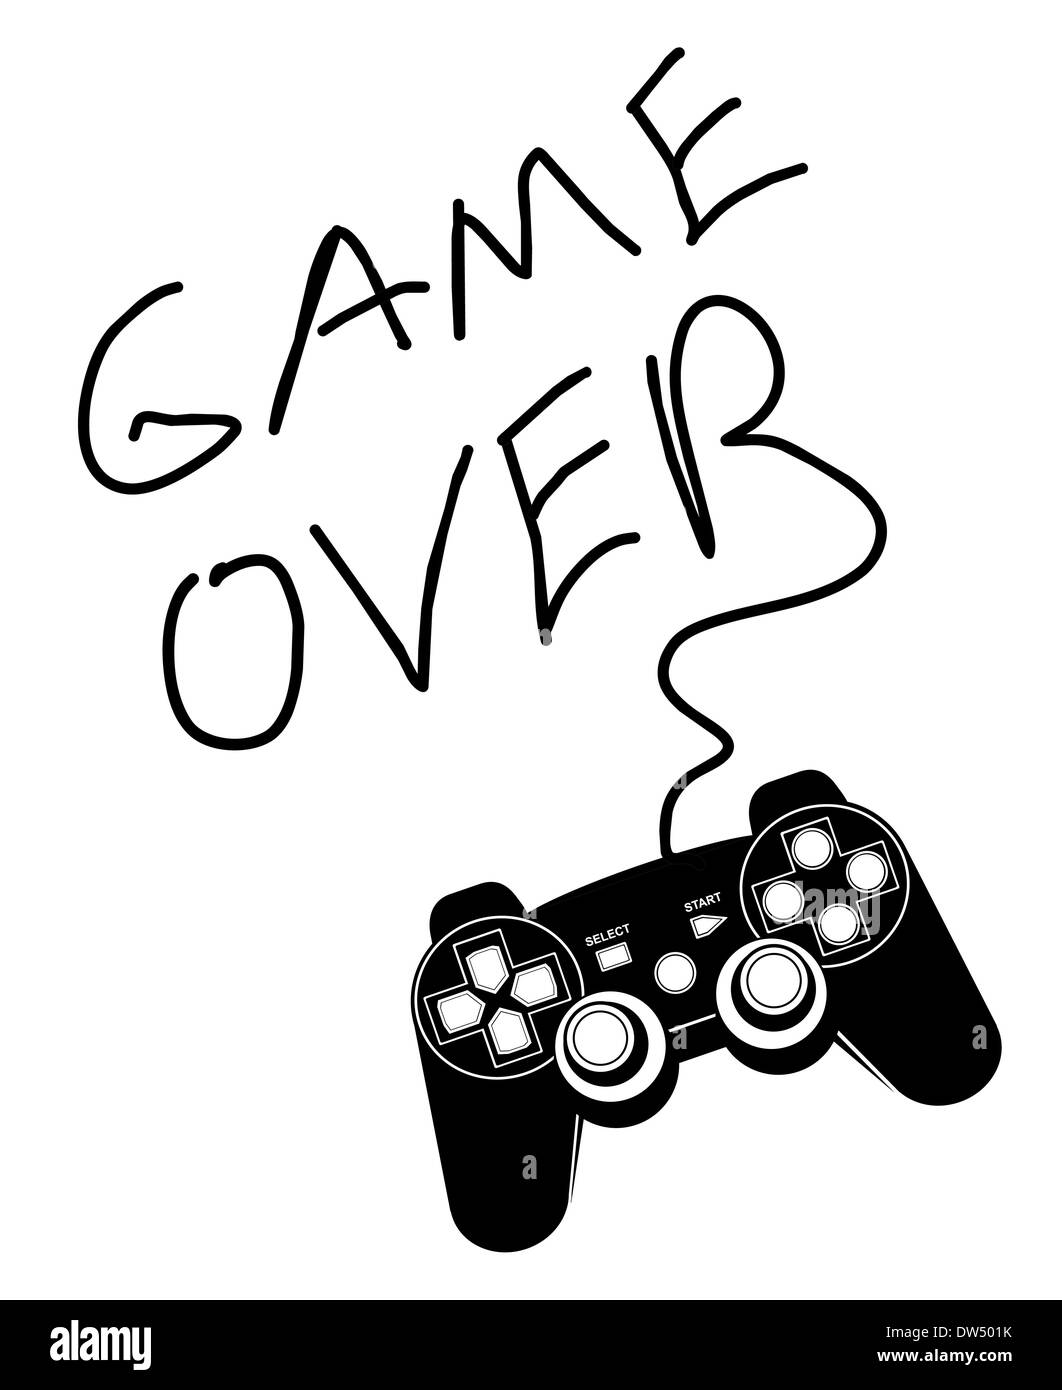 Game over - Stock Image